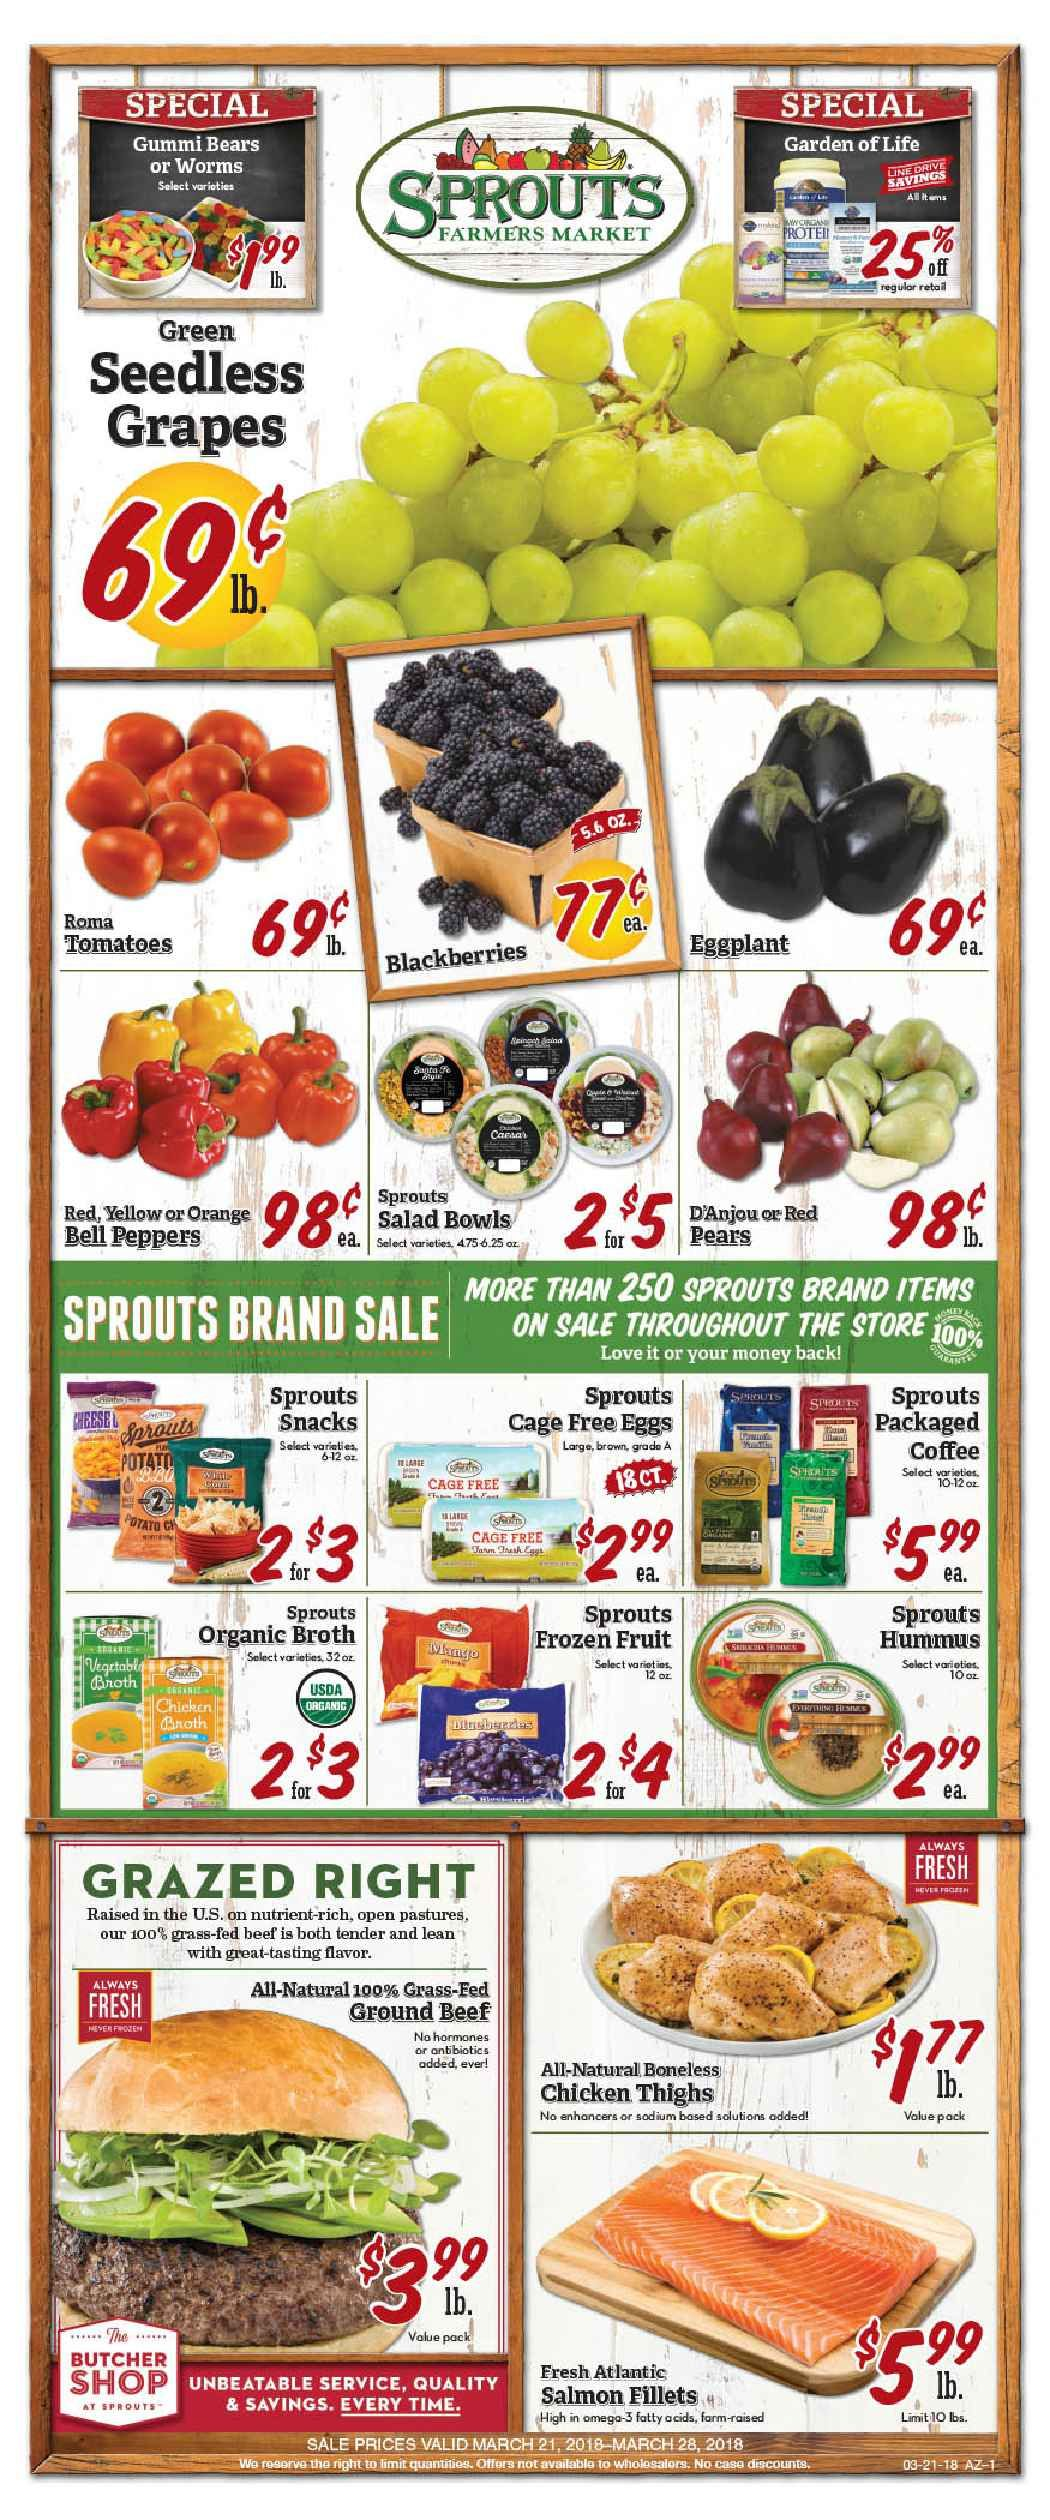 Sprouts Weekly Ad Flyer July 10 17 2019 Weeklyad123 Com Weekly Ad Circular Grocery Stores Grocery Store Ads Gluten Free Items Grocery